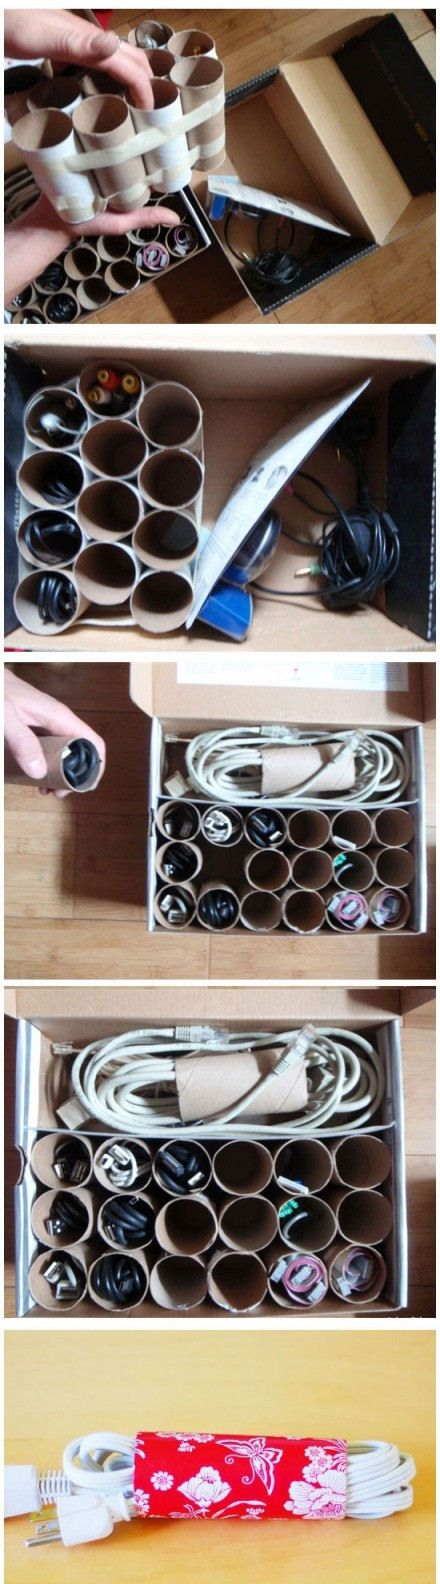 6 DIY Cord Organizers That Will Keep Your Home Clean